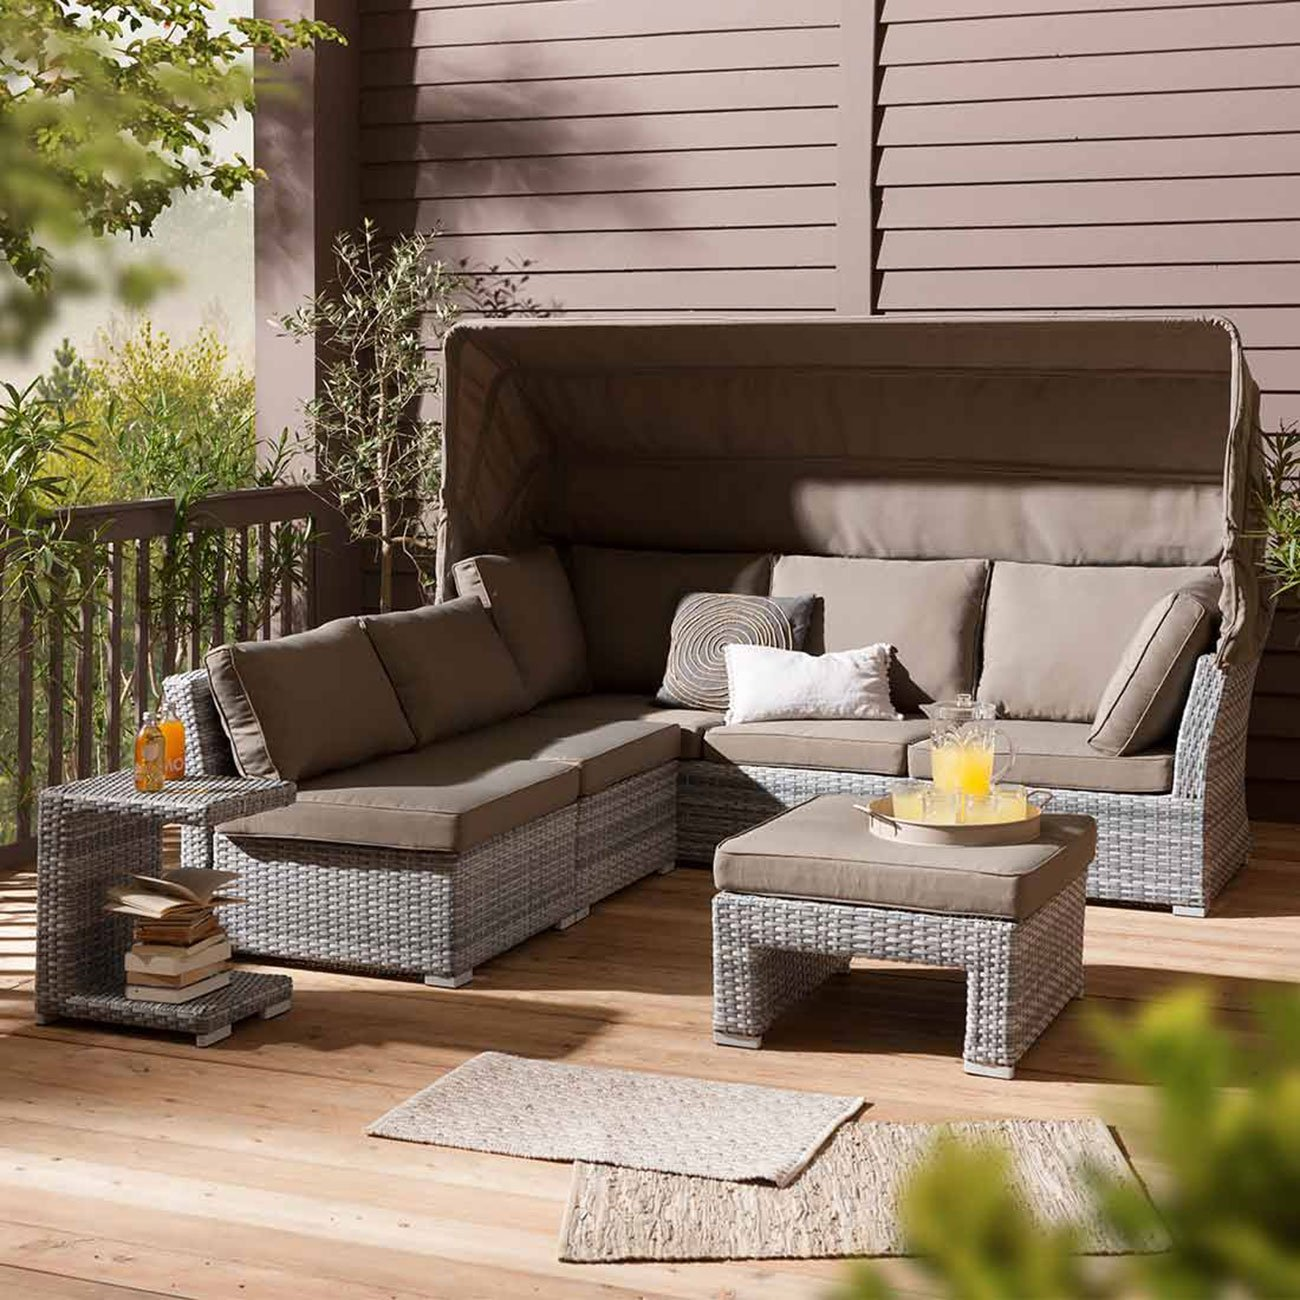 gartenlounge polyrattan outliv ottawa loungeset 5 teilig flachgeflecht graubeige kissen braun. Black Bedroom Furniture Sets. Home Design Ideas